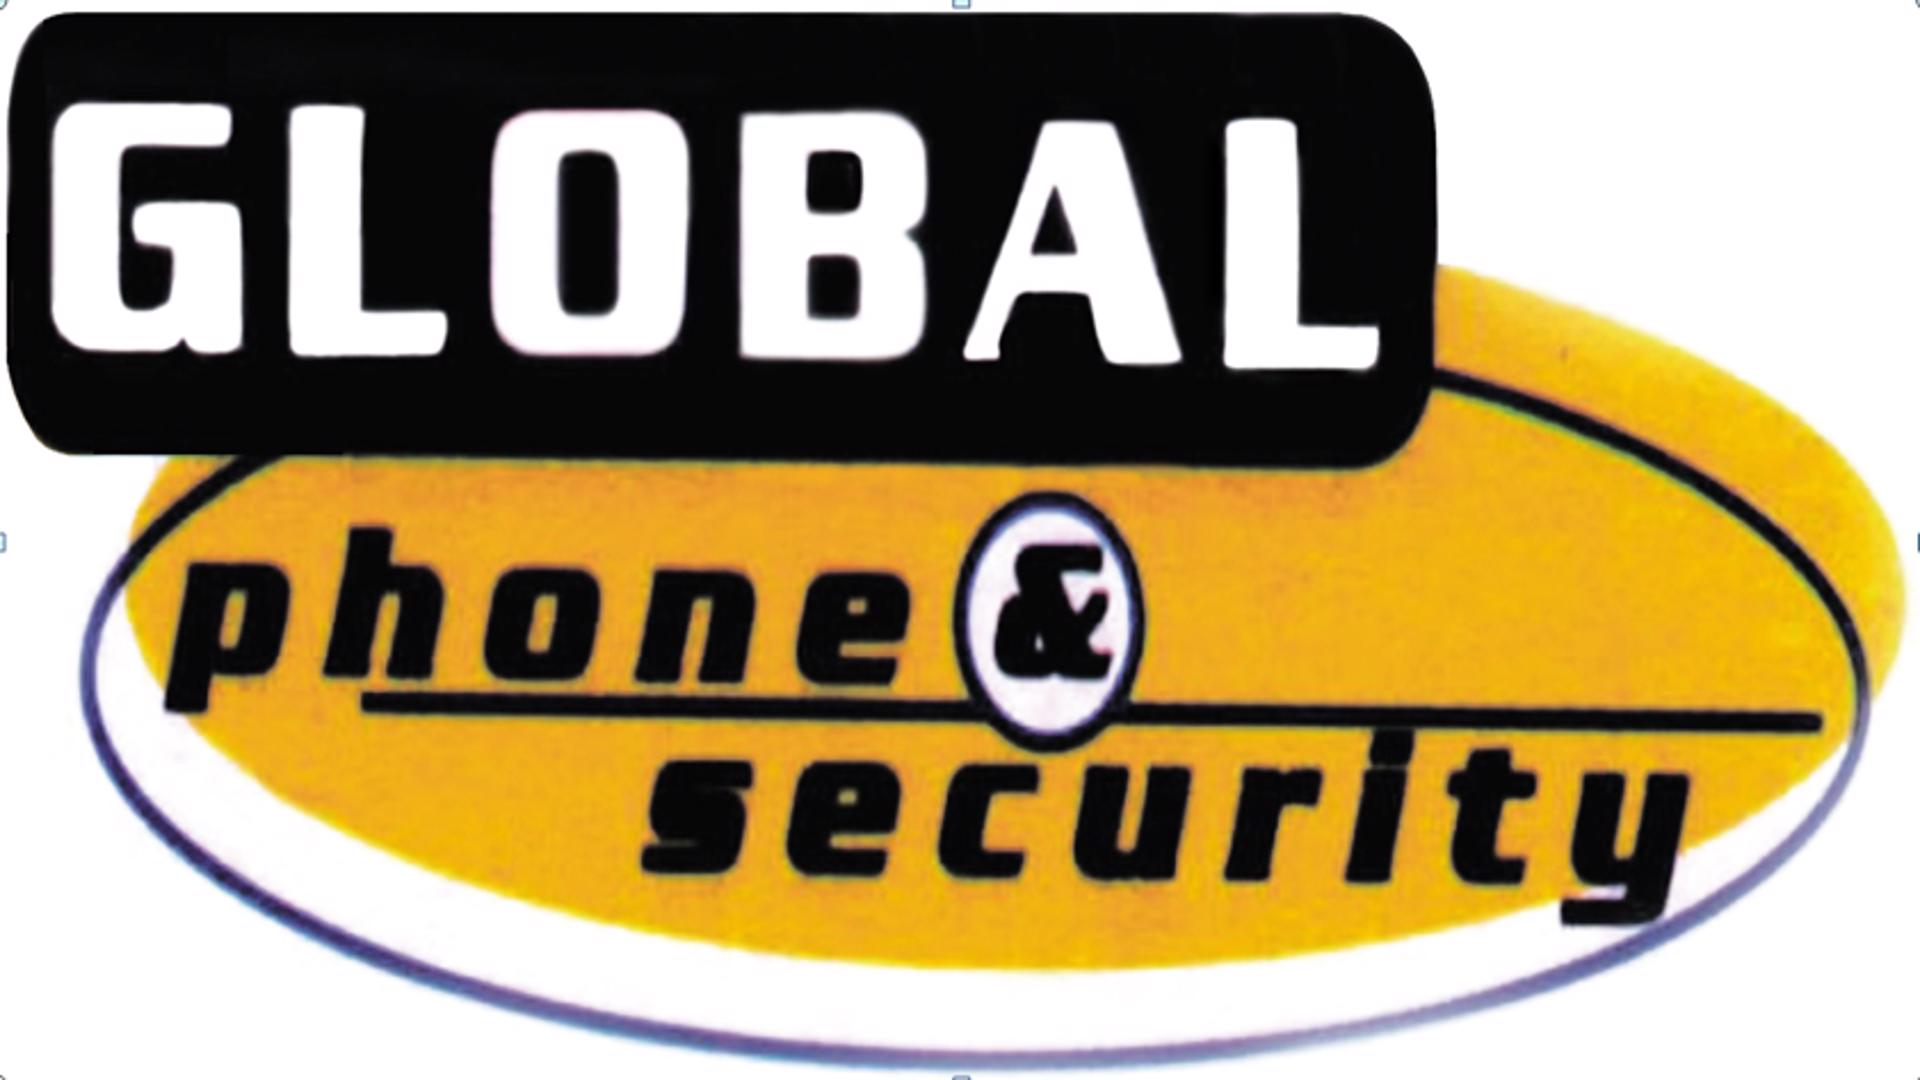 Global Security System Supplier and Installer